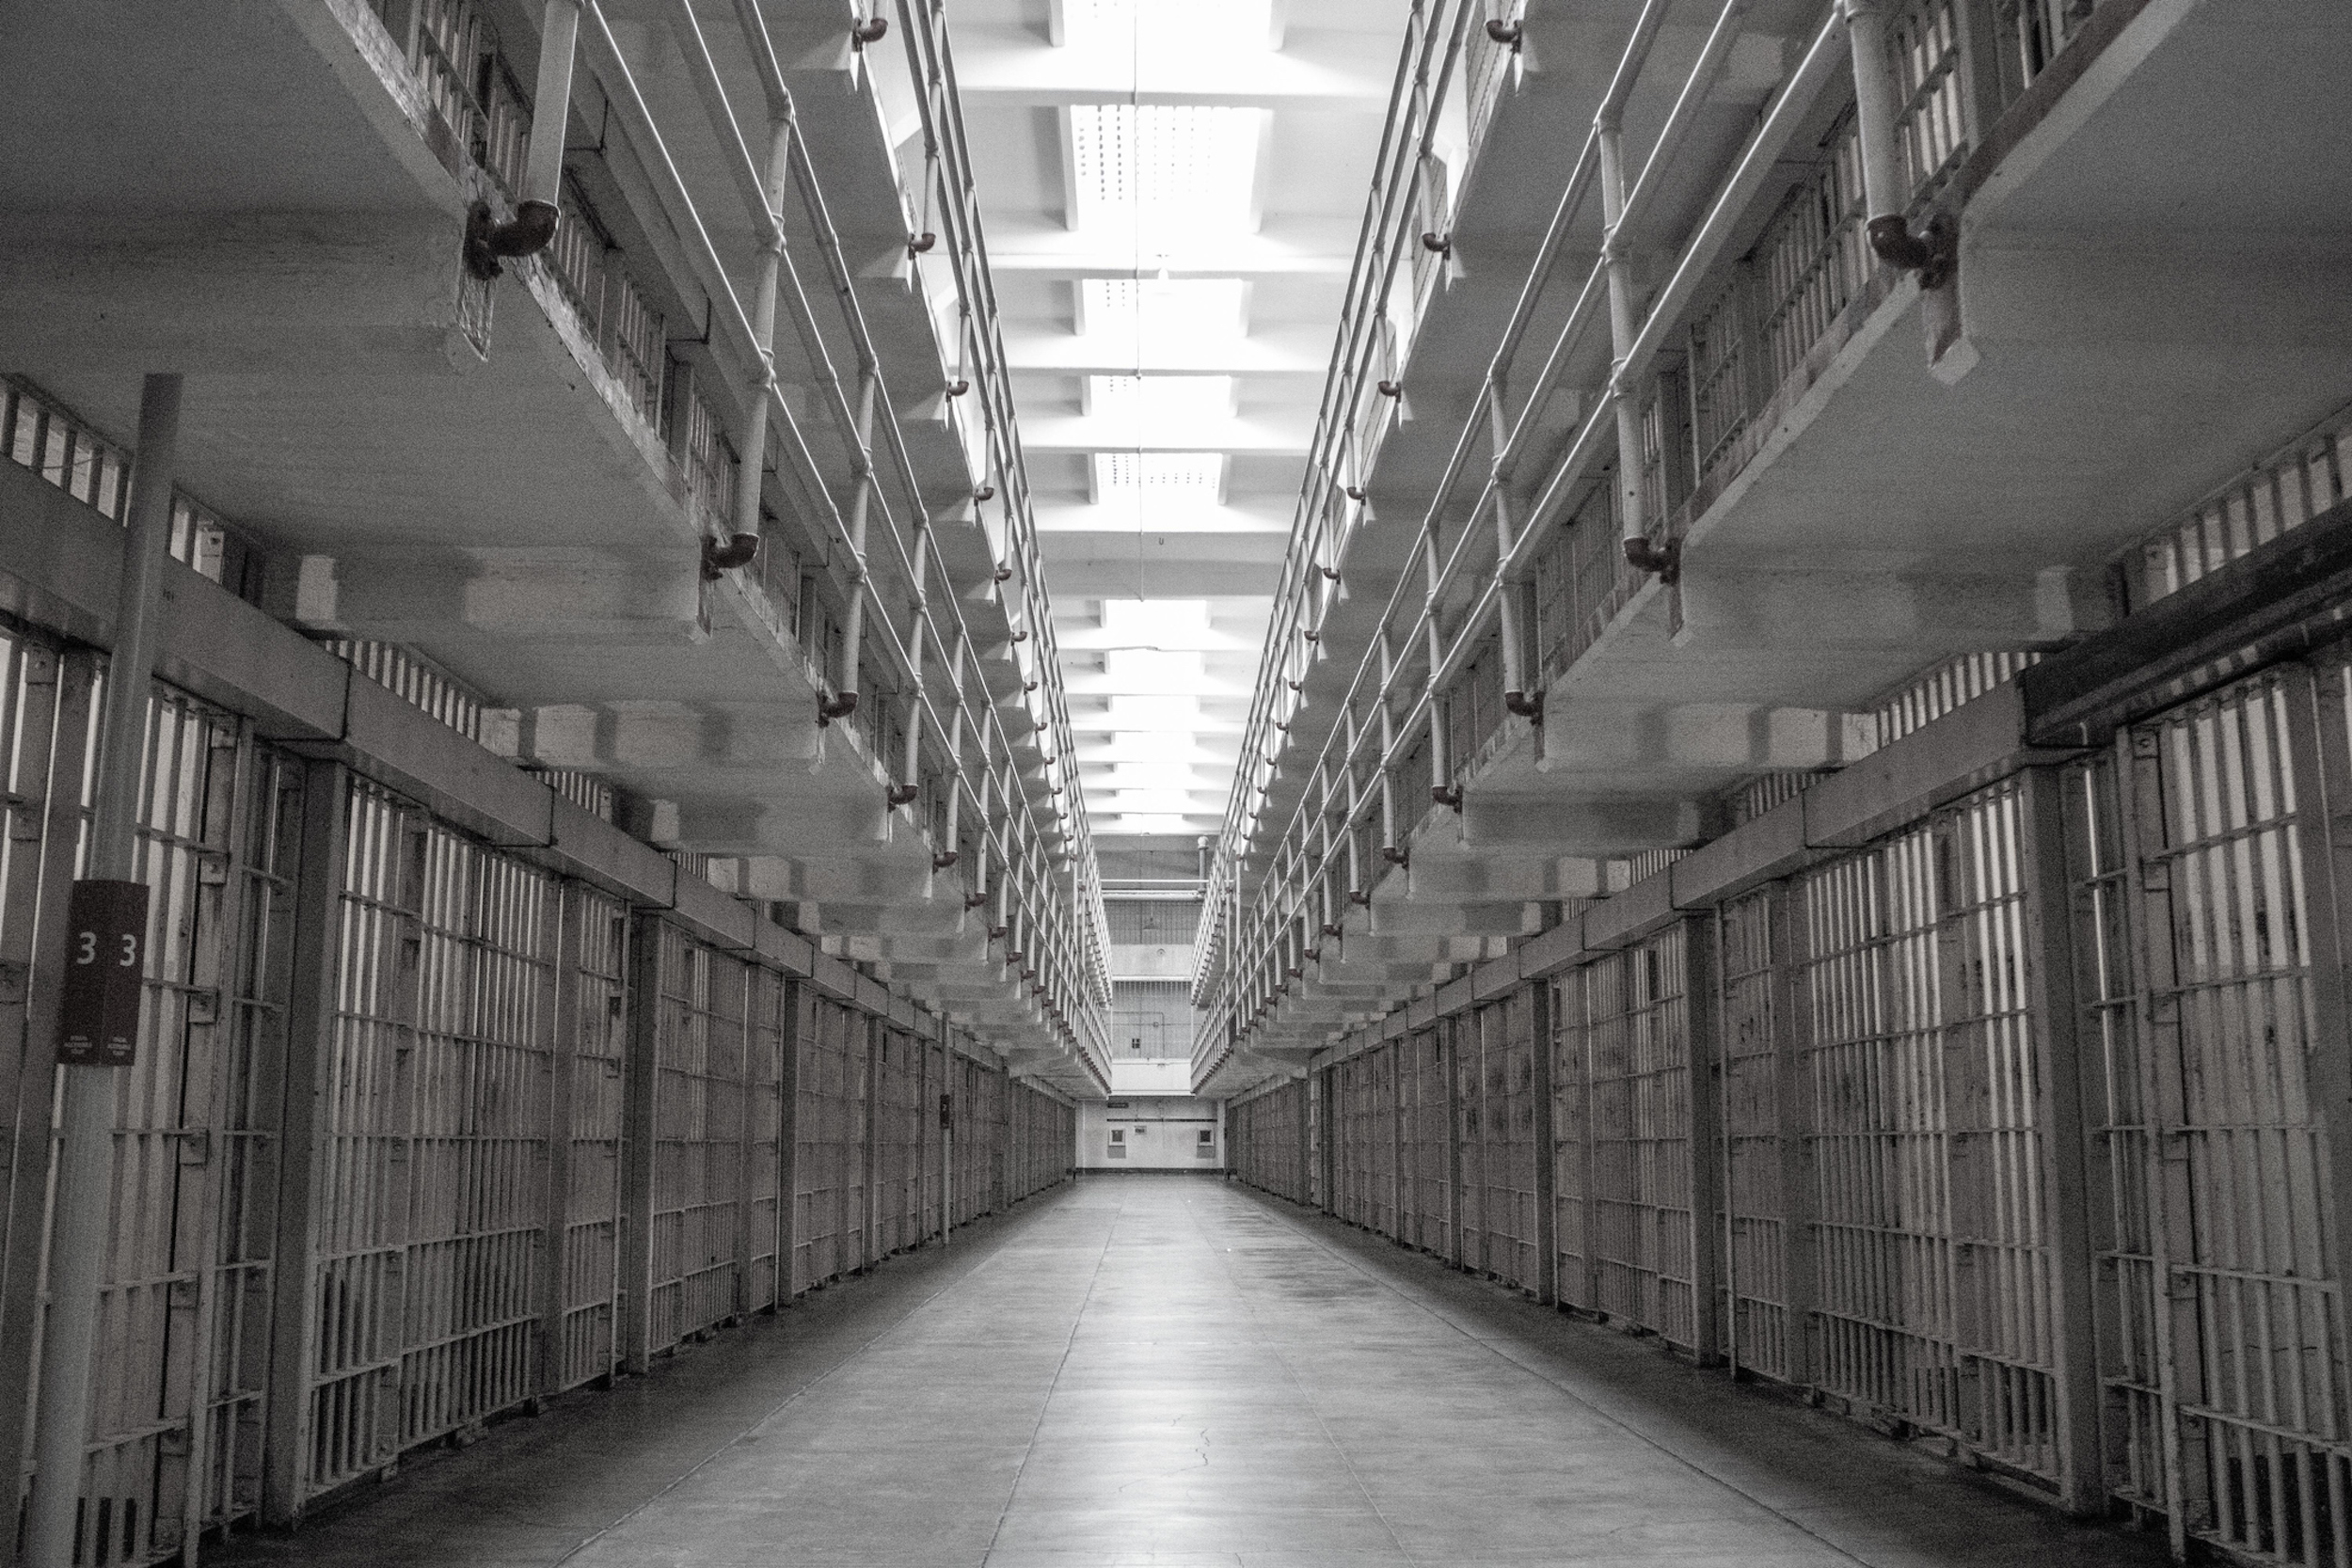 - JHA led the legislative effort to pass a new law which requires the Illinois Department of Corrections to collect and publicly report critical data about incidents of violence within its facilities.